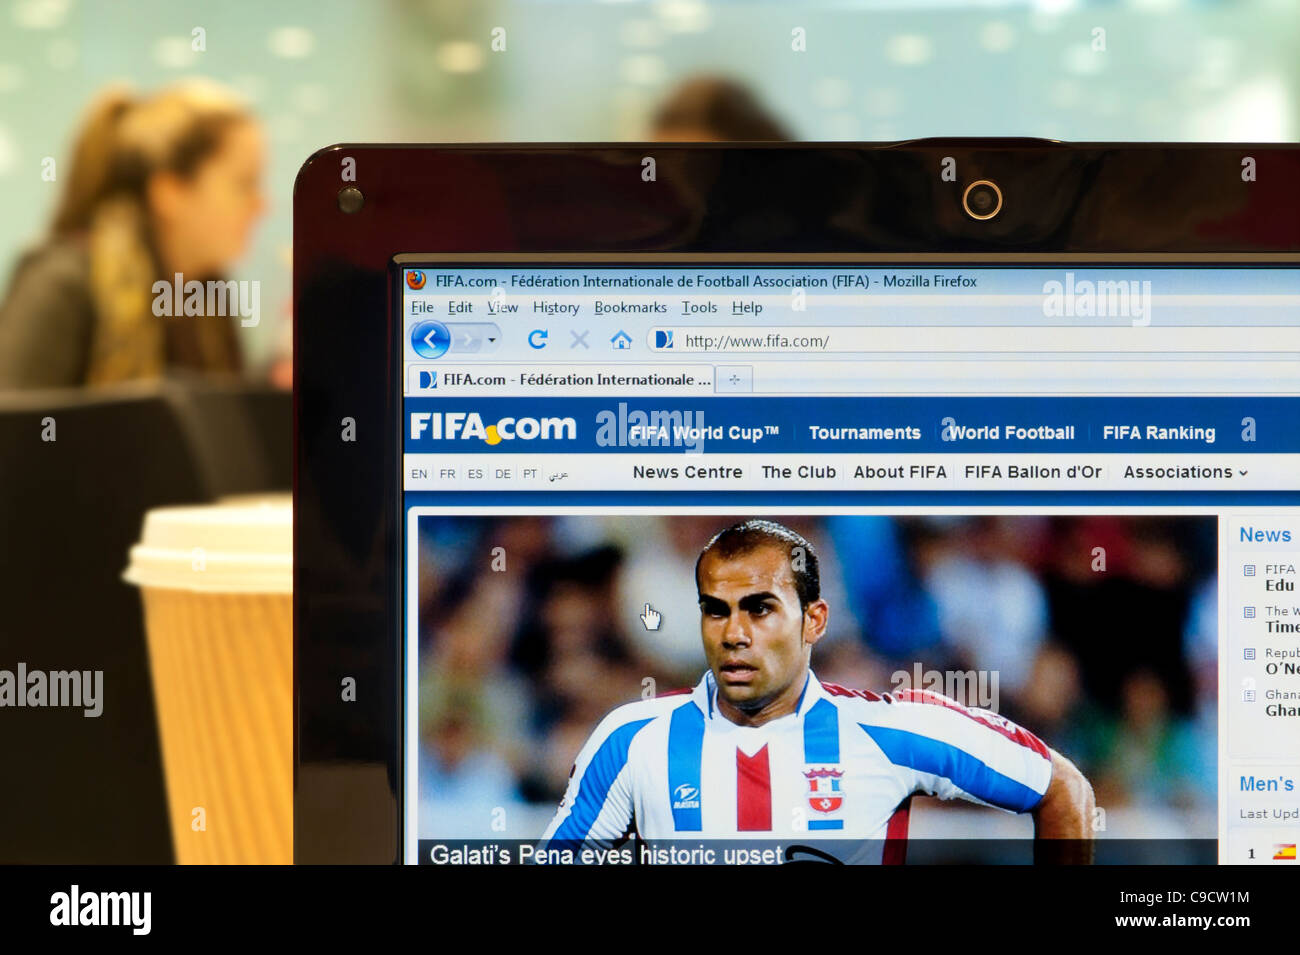 The FIFA website shot in a coffee shop environment (Editorial use only: print, TV, e-book and editorial website). - Stock Image